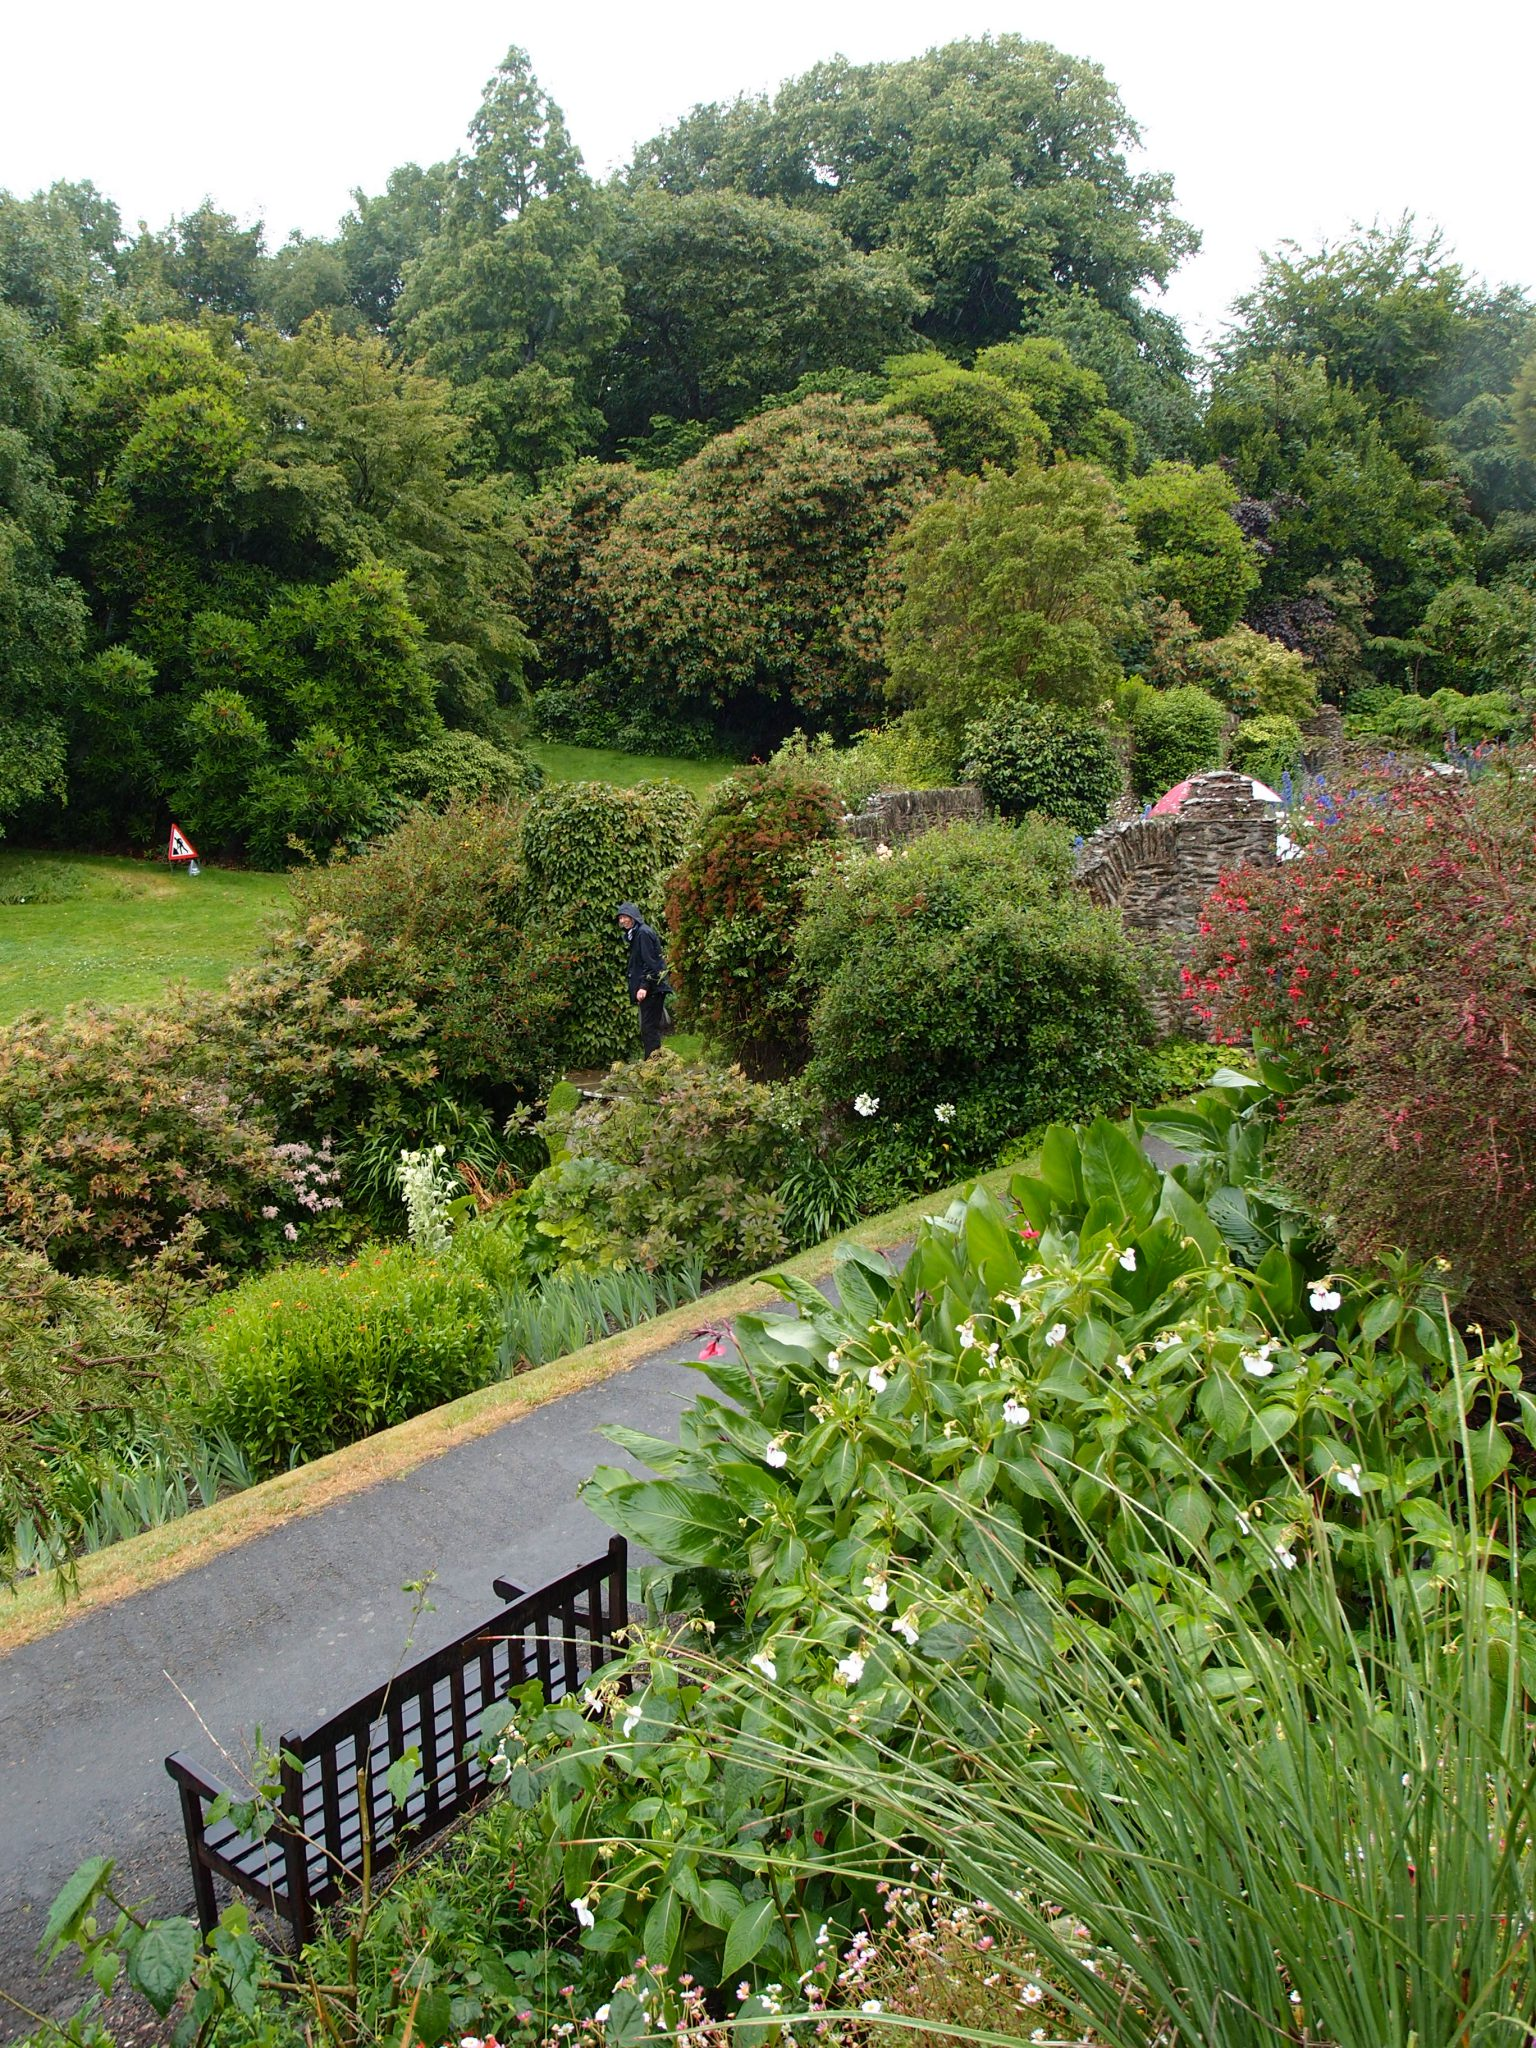 View from the Top Terrace toward the walls enclosing the Rill Garden.